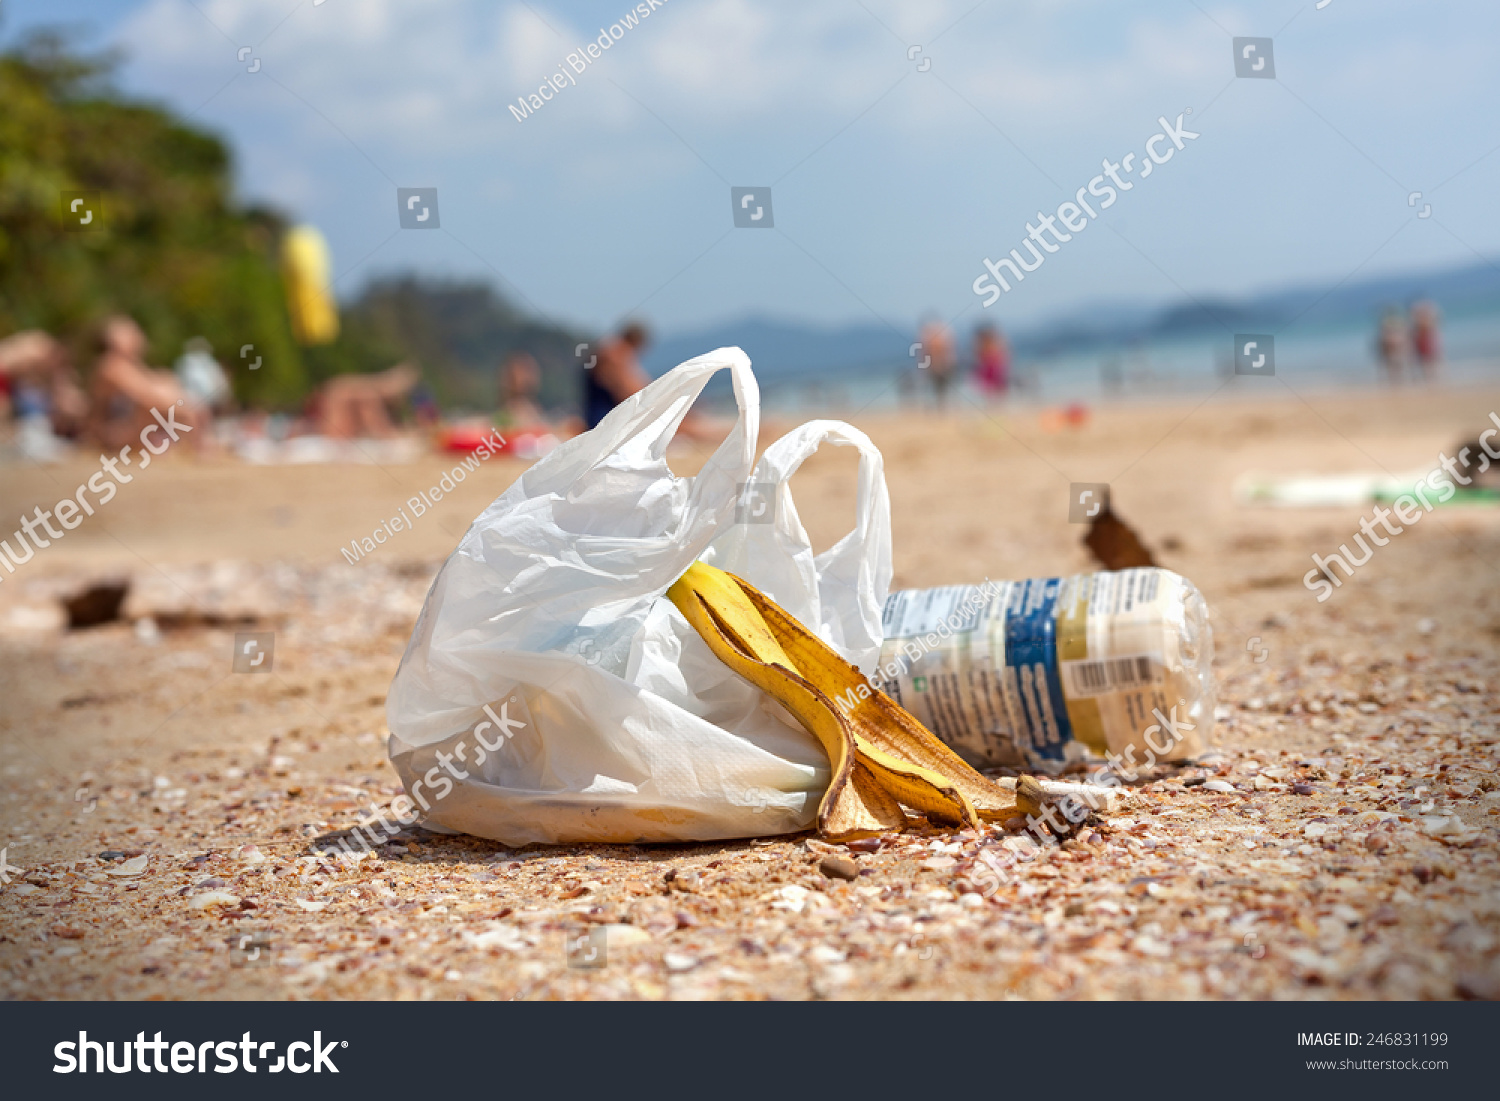 essay on plastic bags are harmful Check out our top free essays on plastic planet ark plastic bag reduction burning of plastic materials | substances harmful to the.